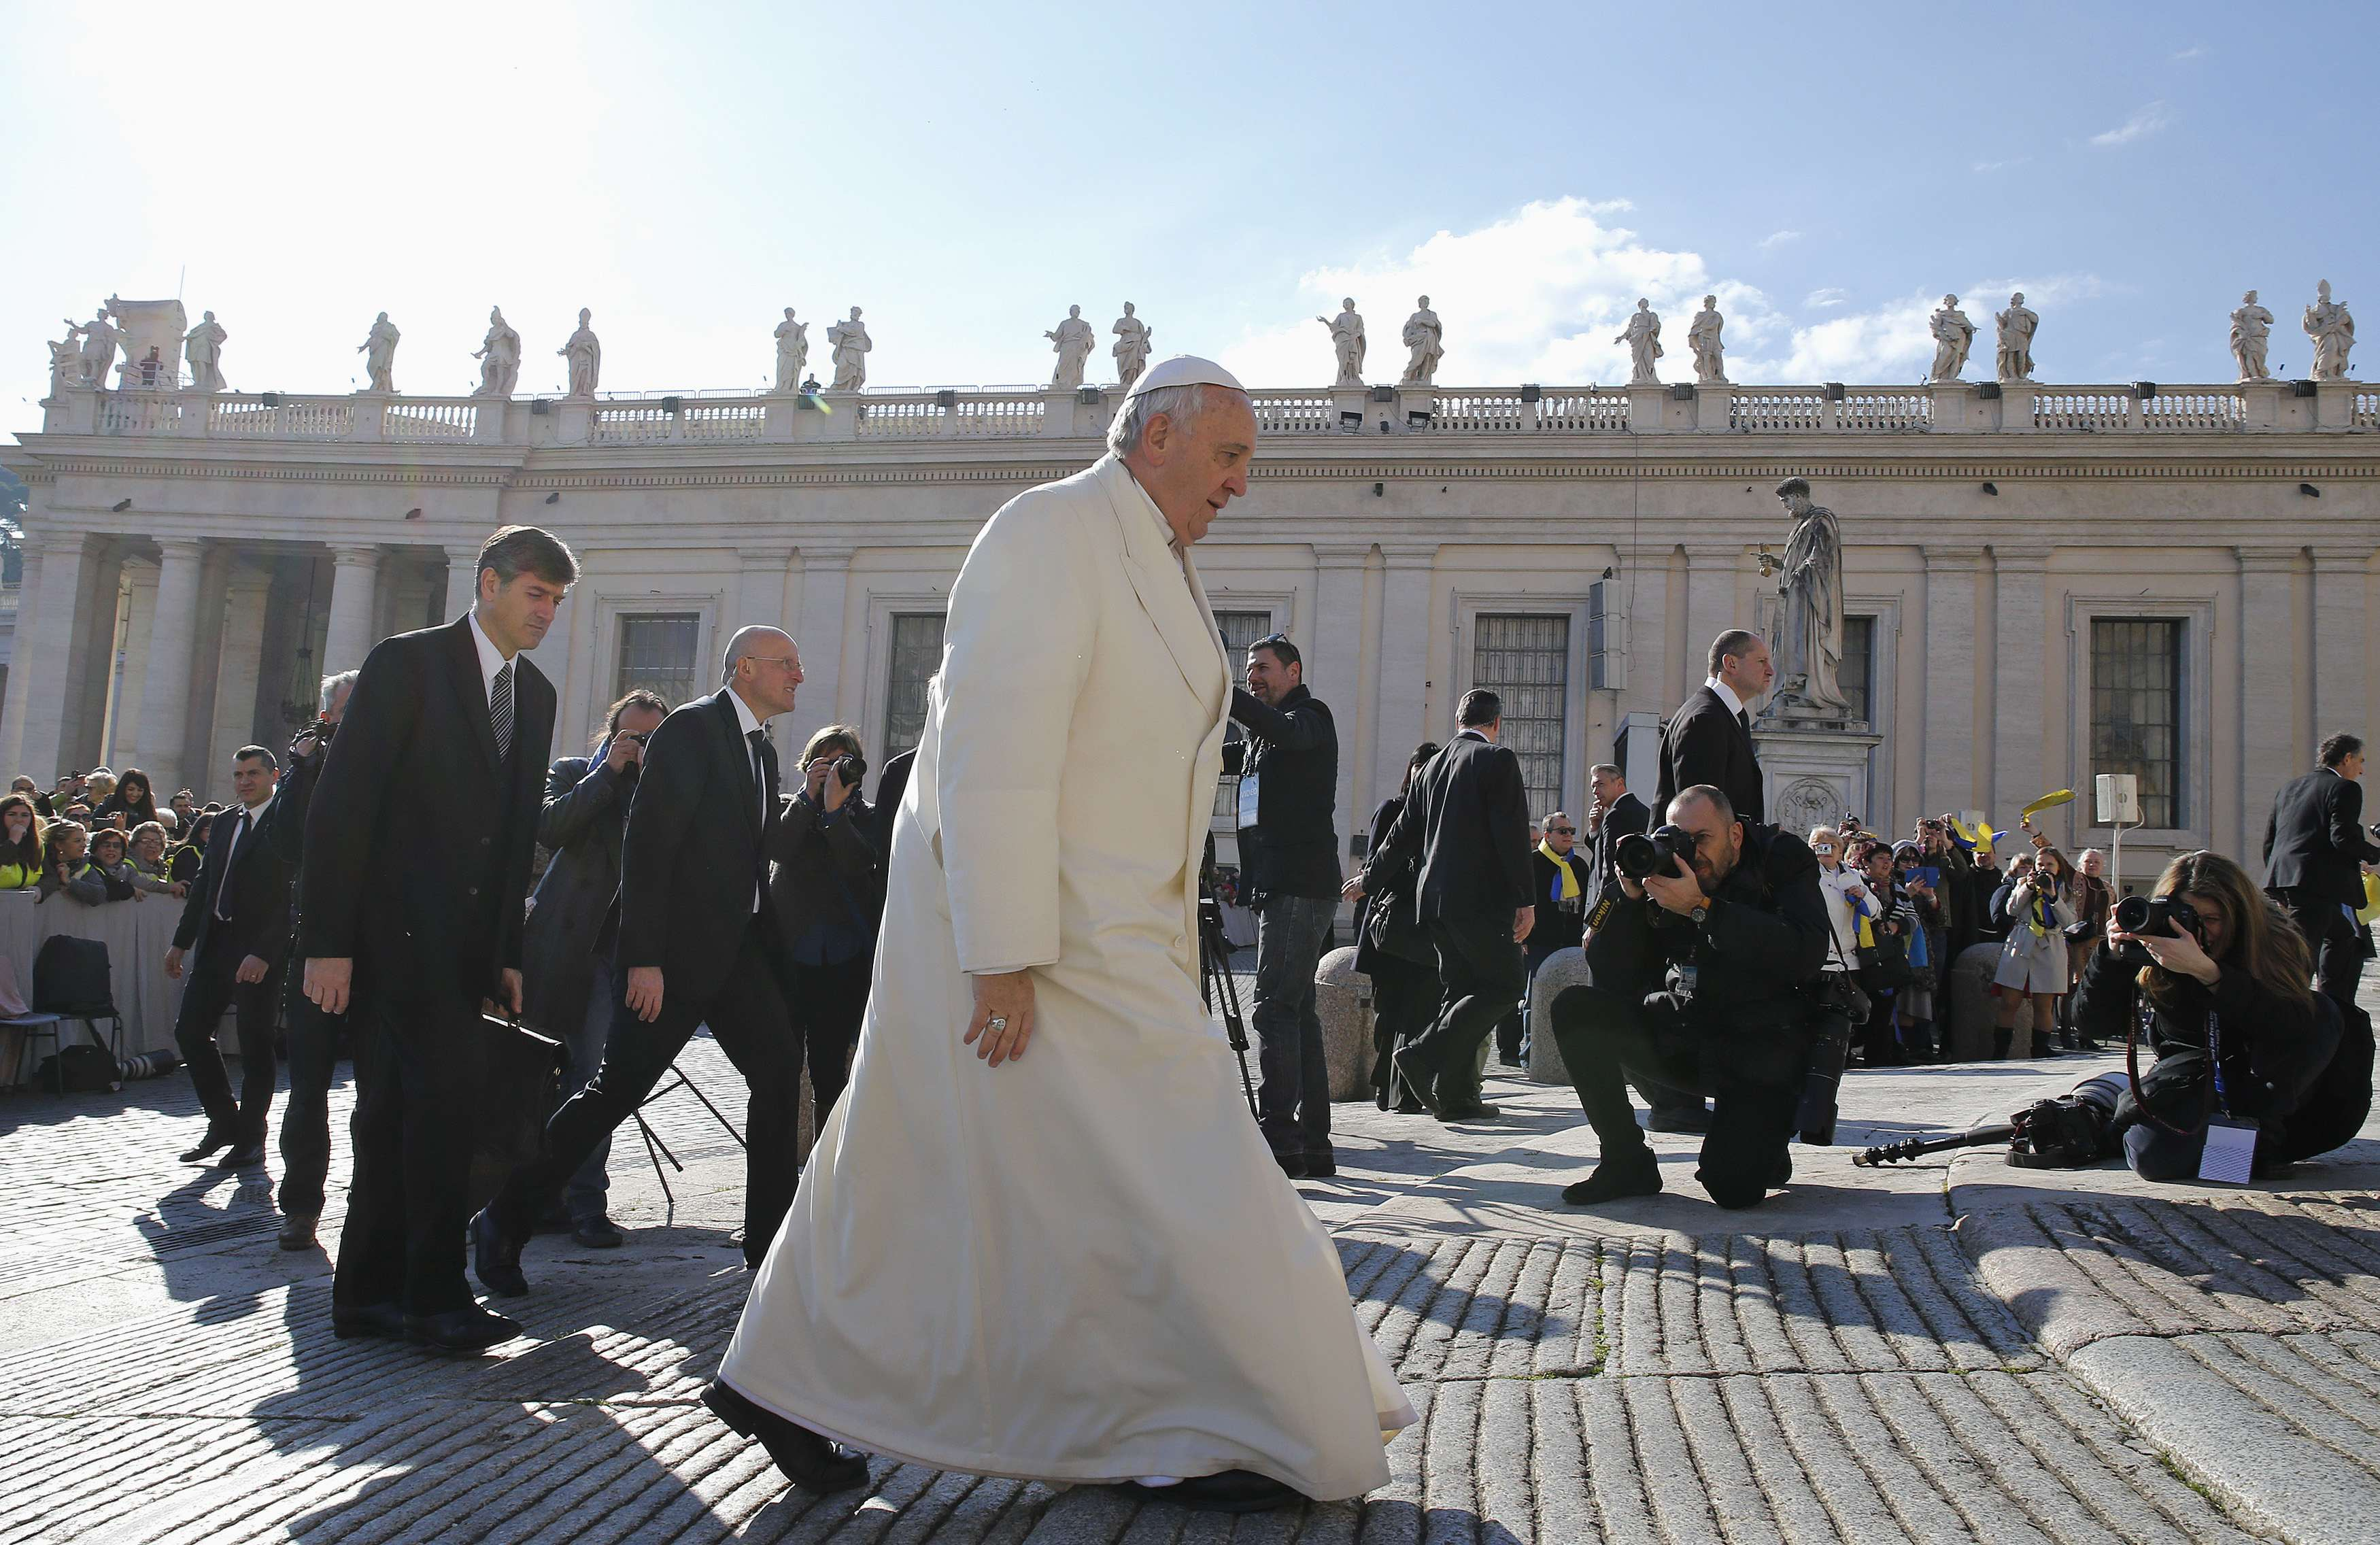 Vatican condemns leaking of documents showing power struggle